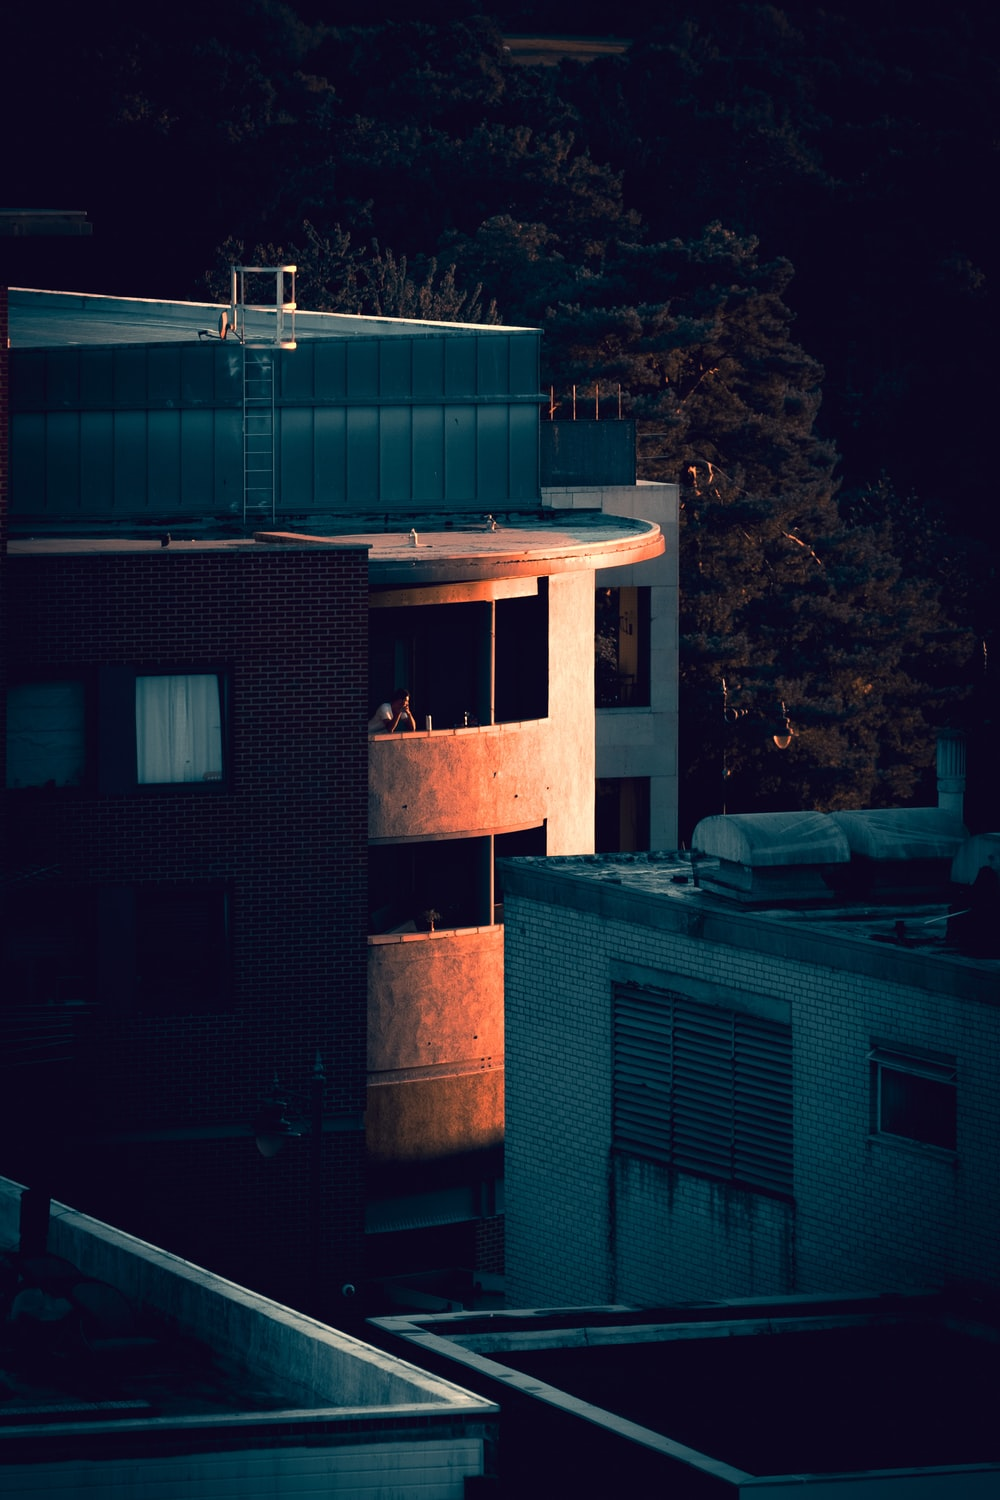 brown and white concrete building during night time